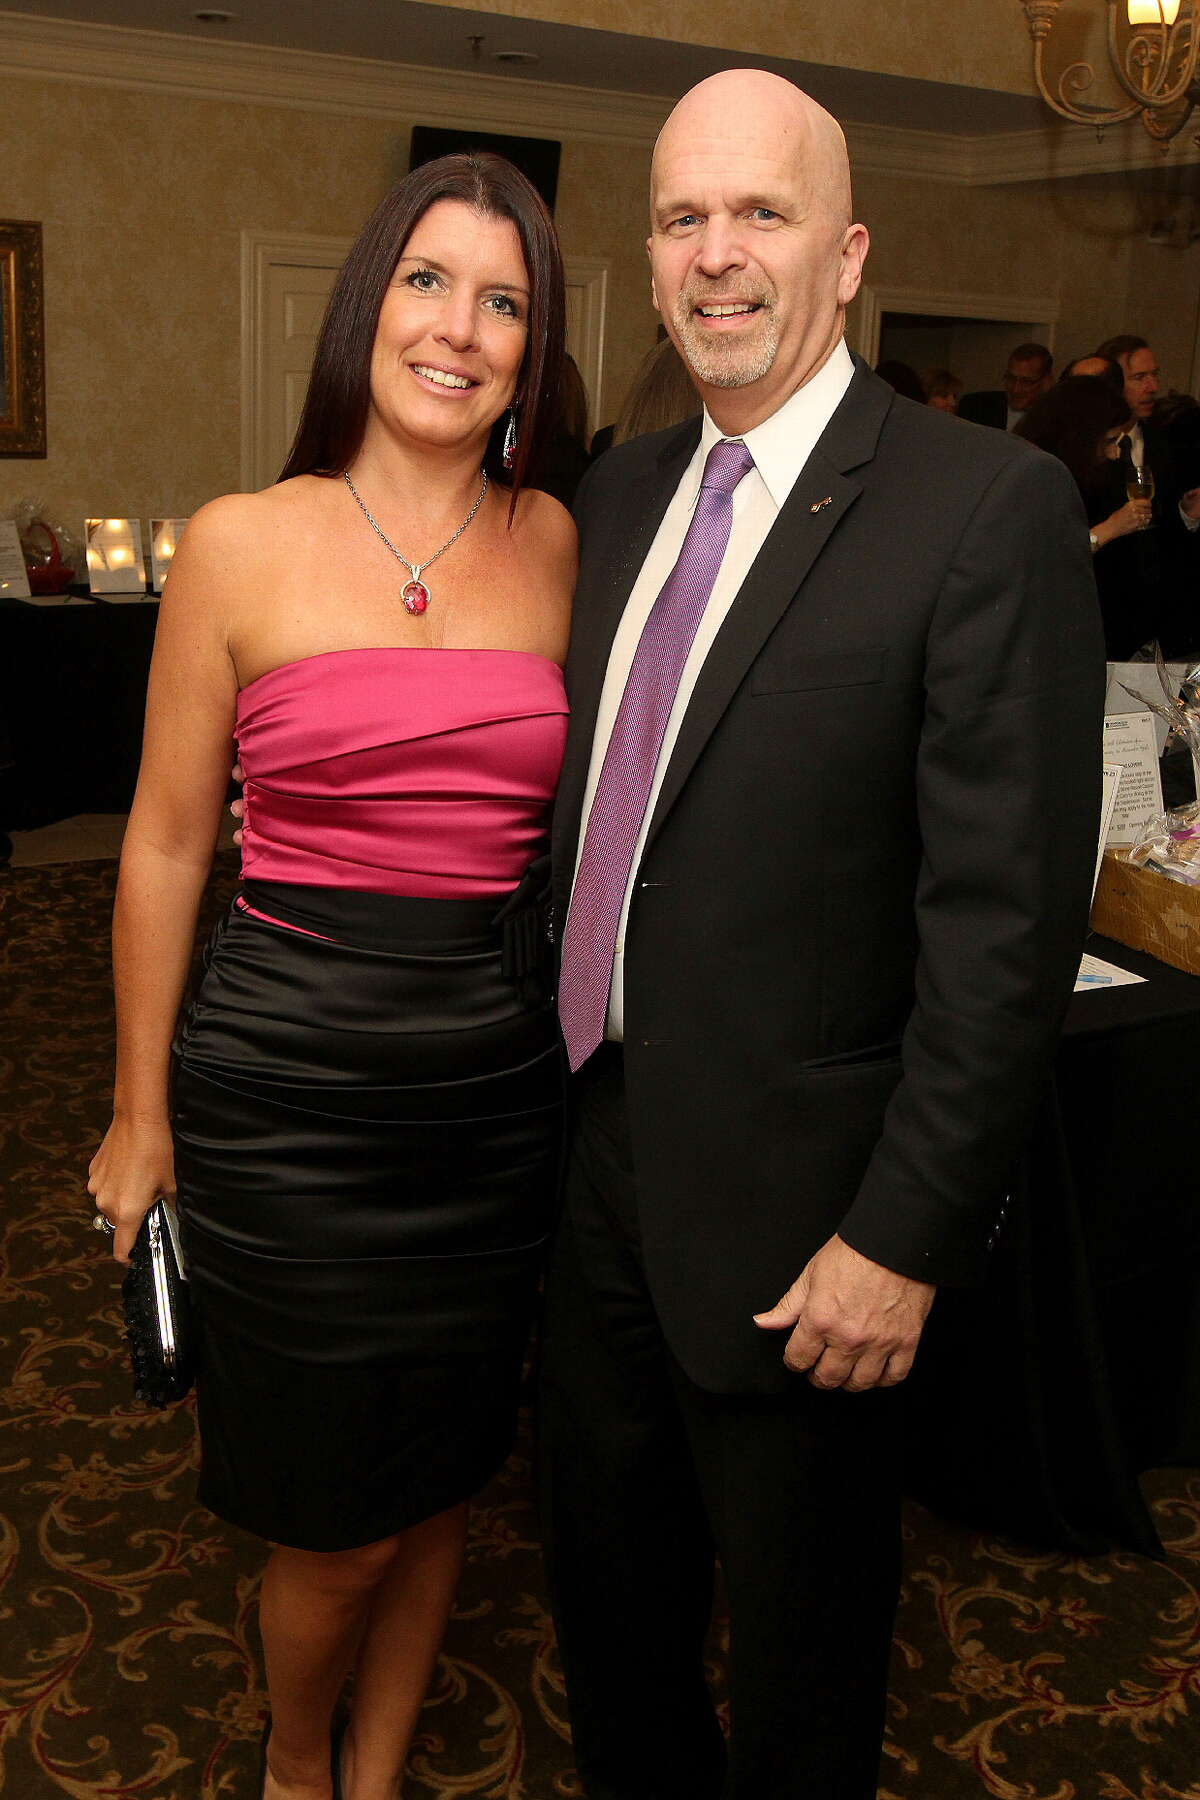 Were you Seen at the Evening to Remember Gala benefit for the Upstate Northeastern New York Chapter of Crohn's & Colitis Foundation of America on Saturday, Nov. 2, 2013, at Glen Sanders Mansion in Scotia?